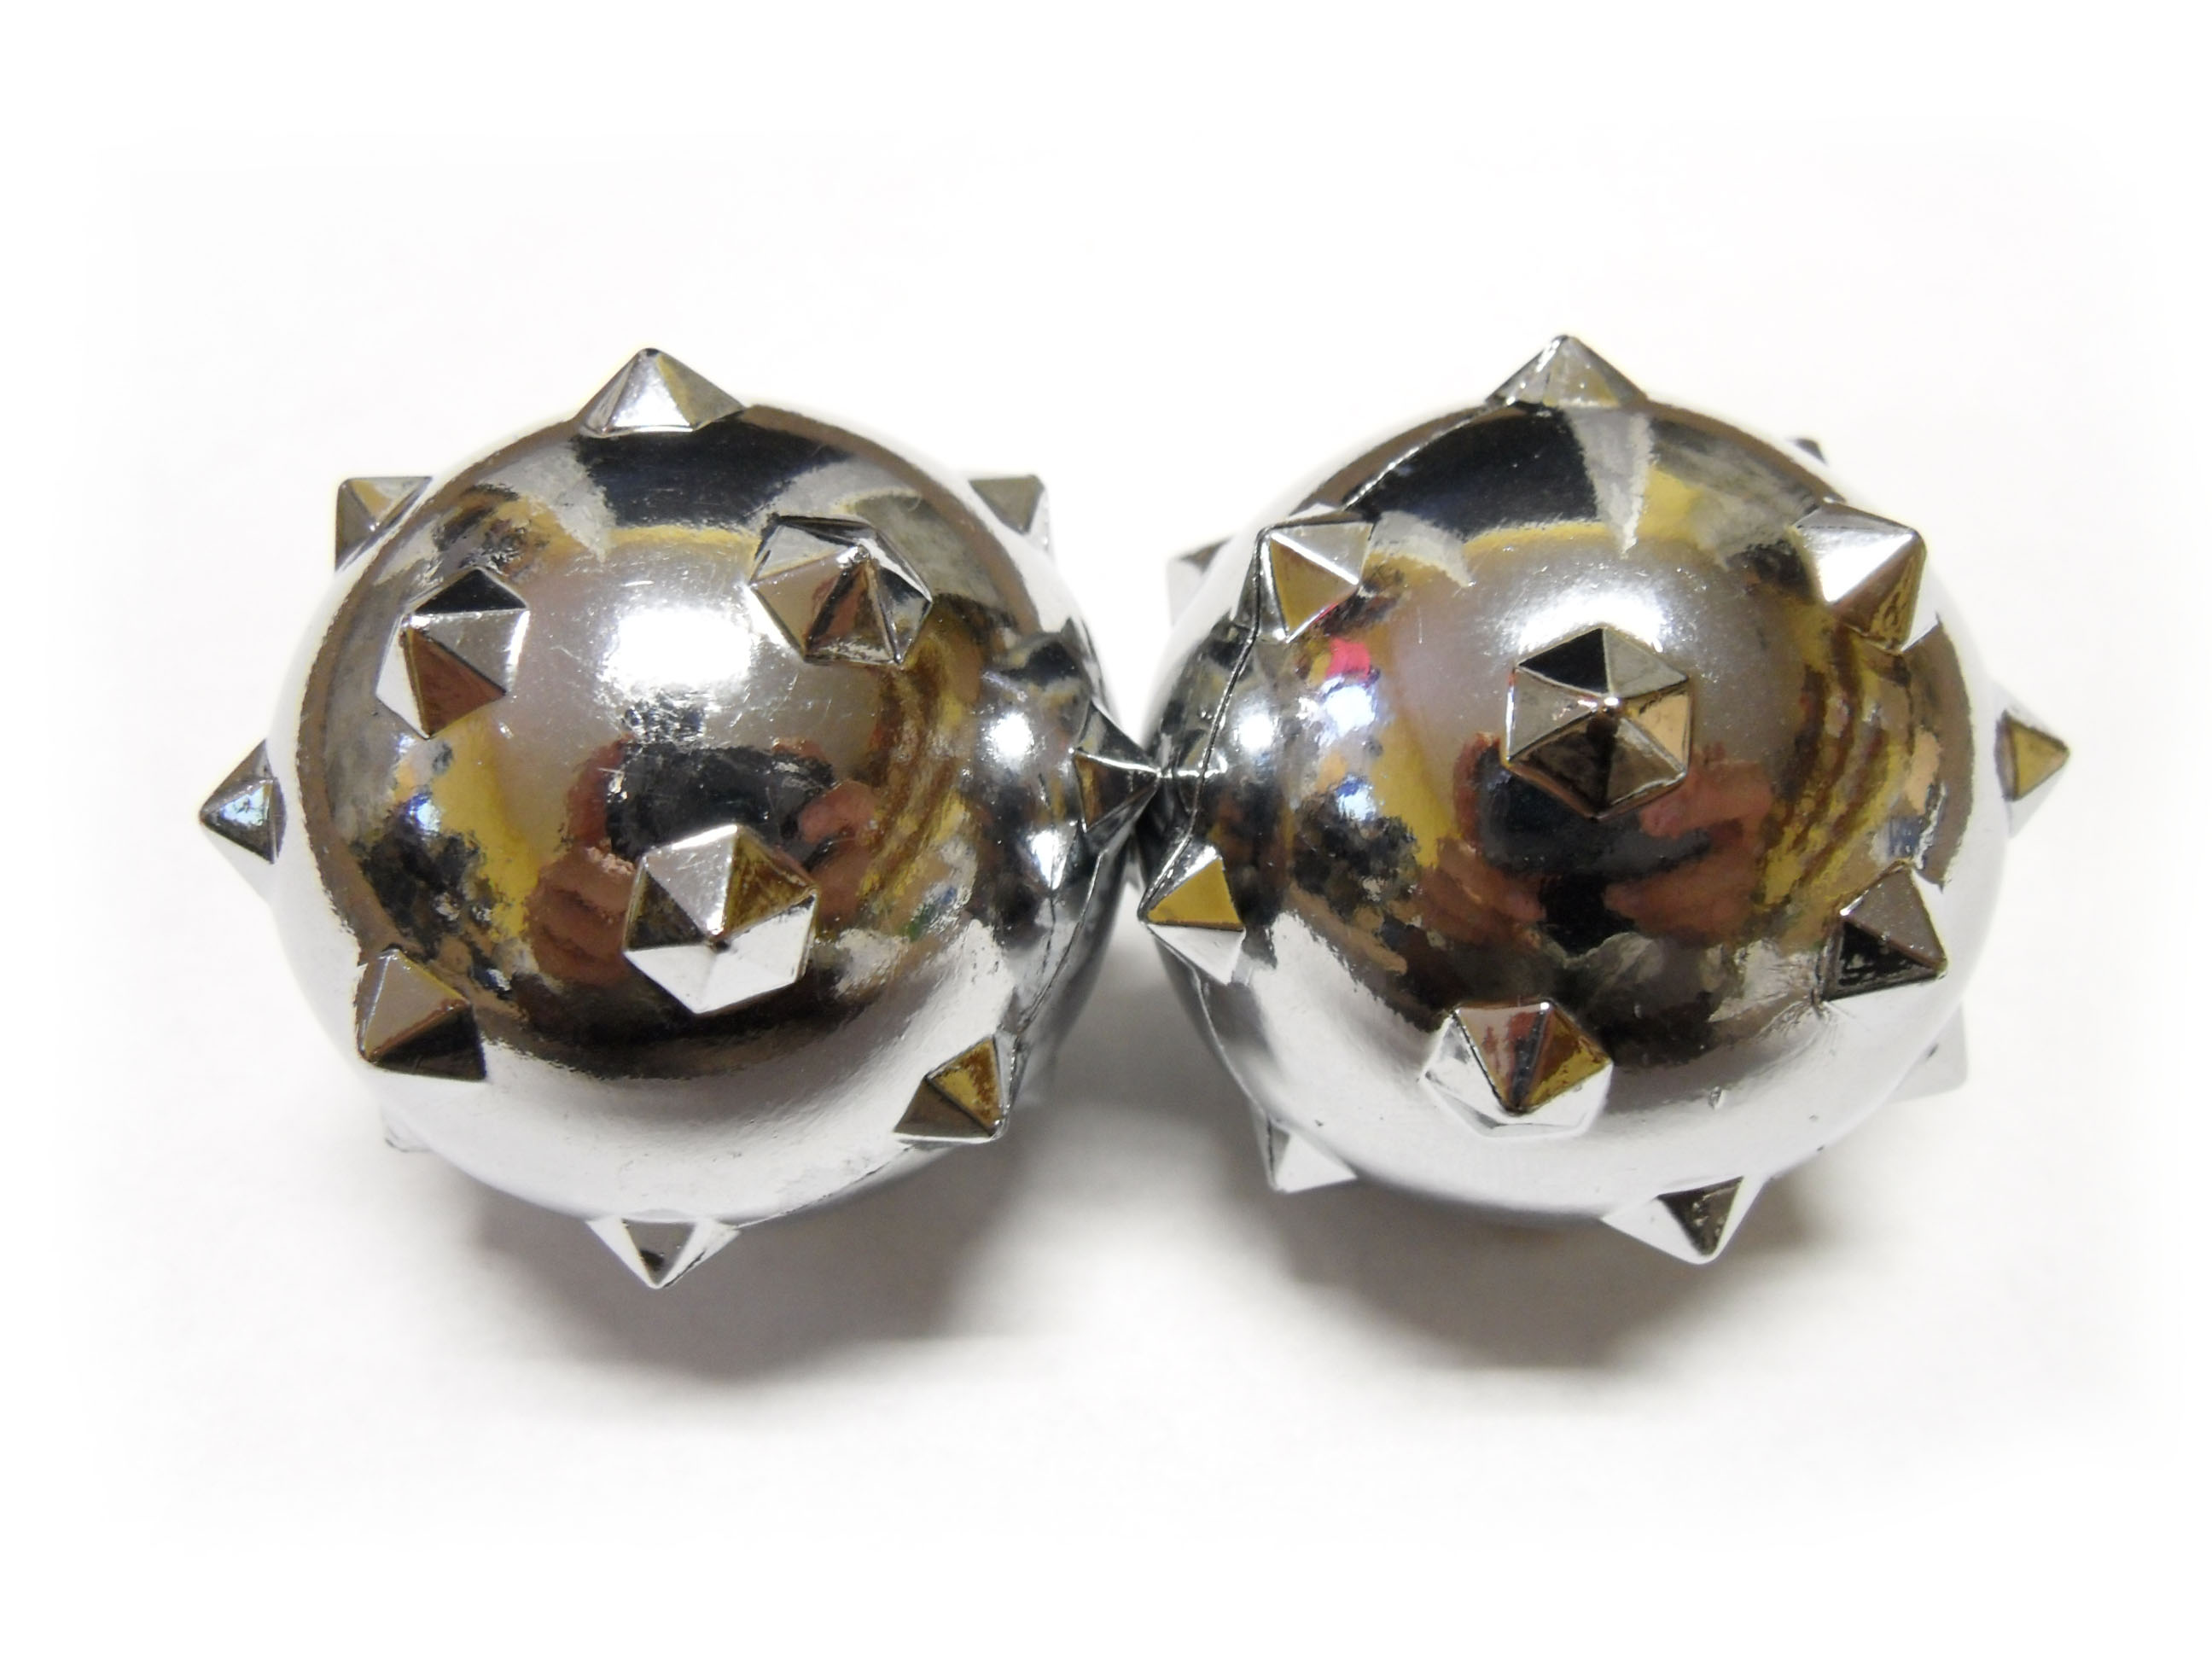 Baoding balls with acupressure spikes